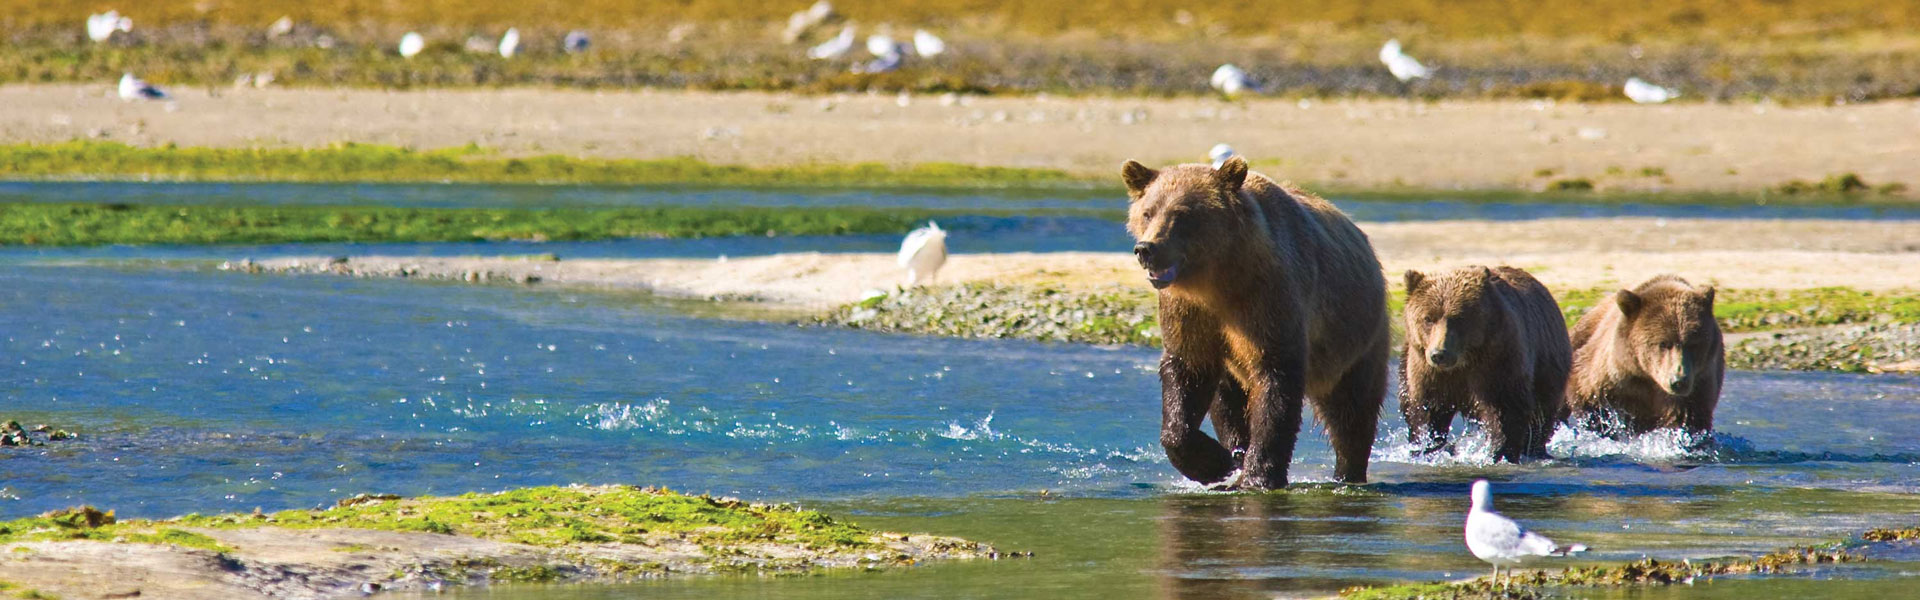 Katmai National Park | Alaska Bear Viewing Excursions